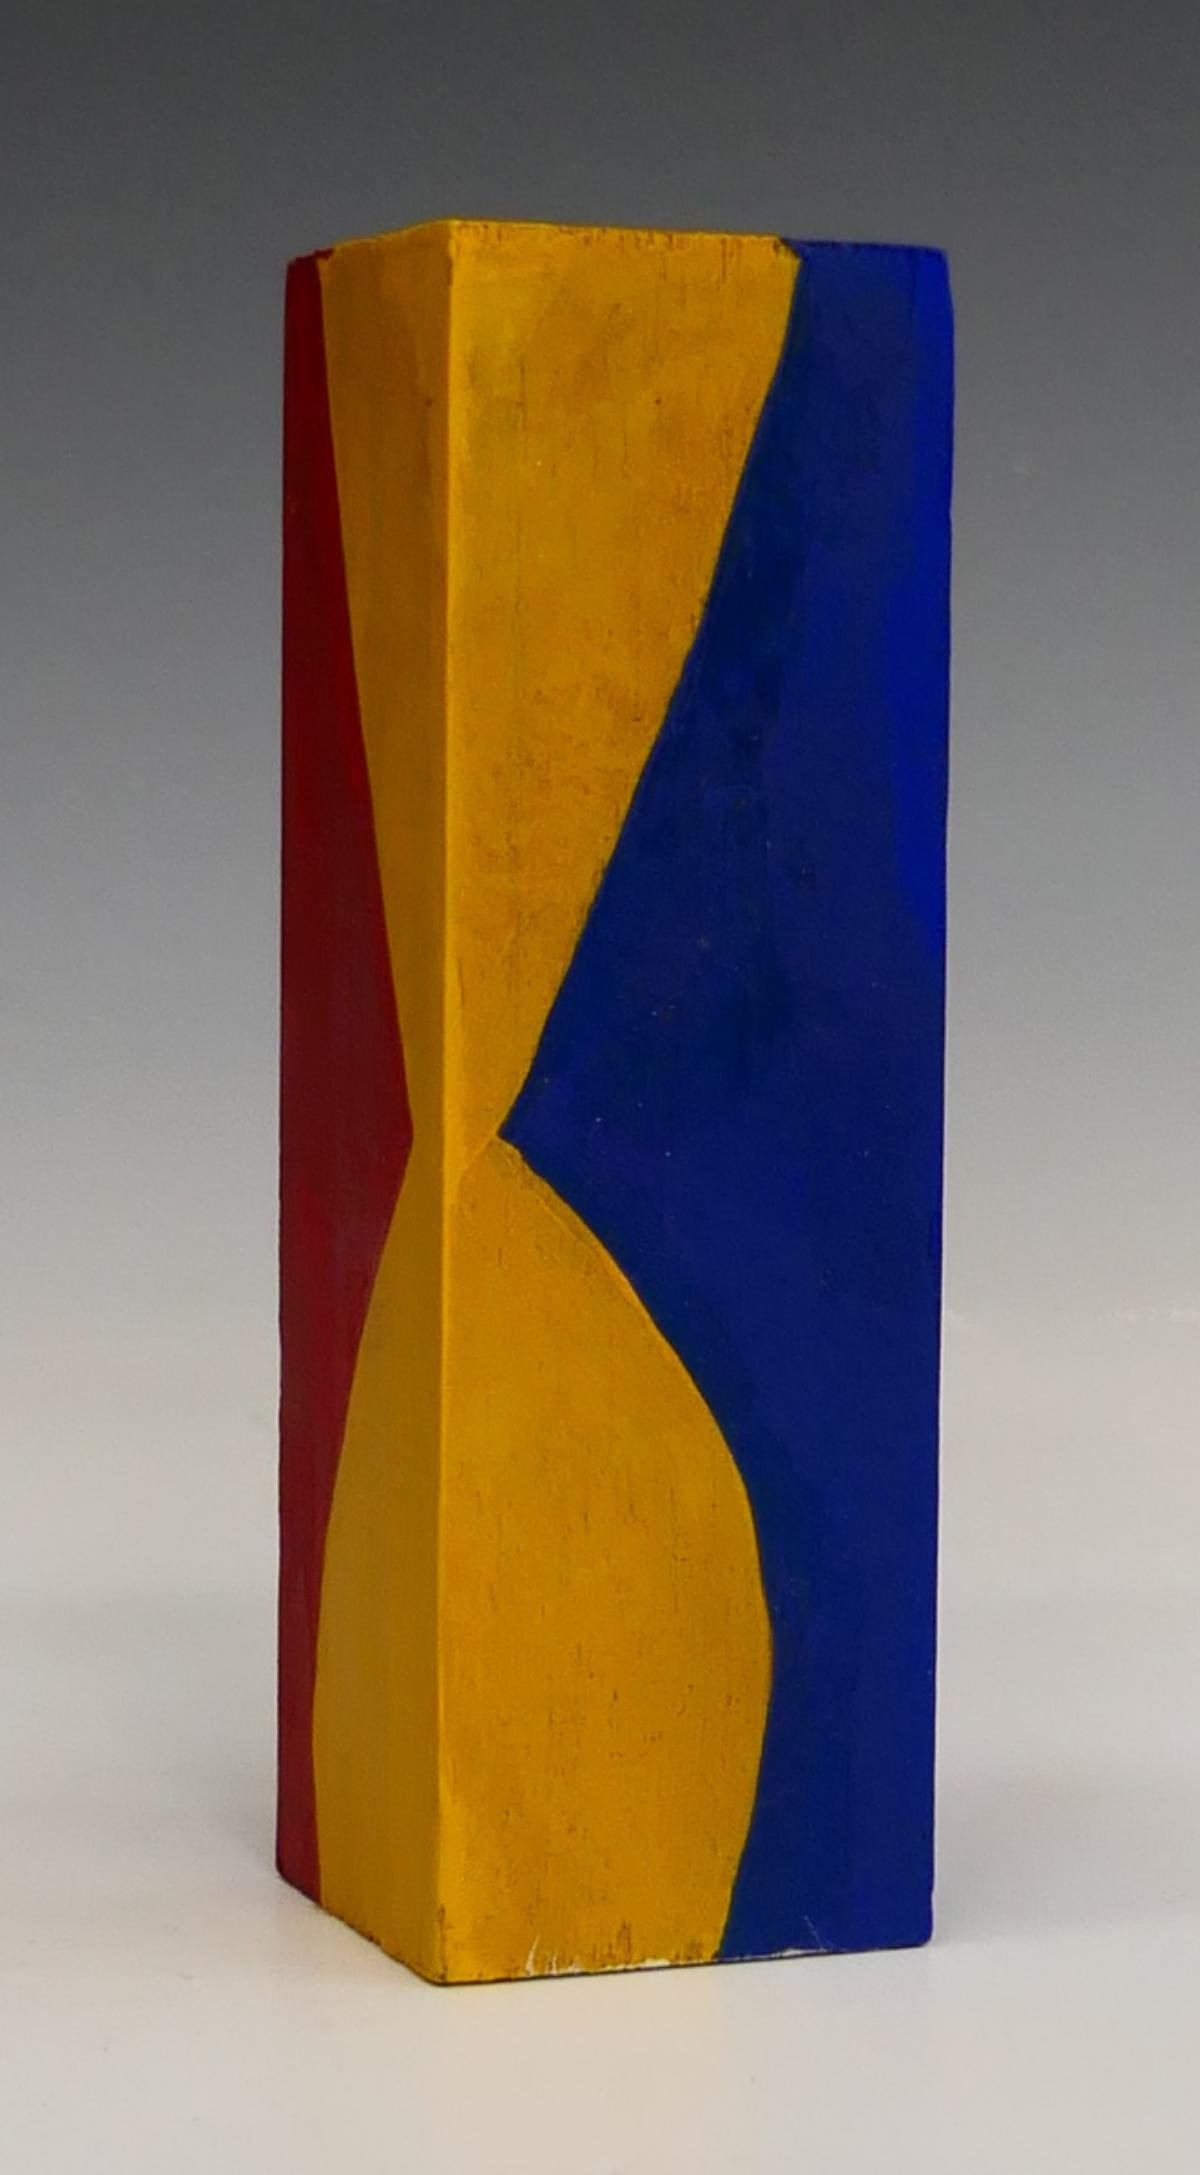 LEON POLK SMITH (1909-1996) WOOD SCULPTURE